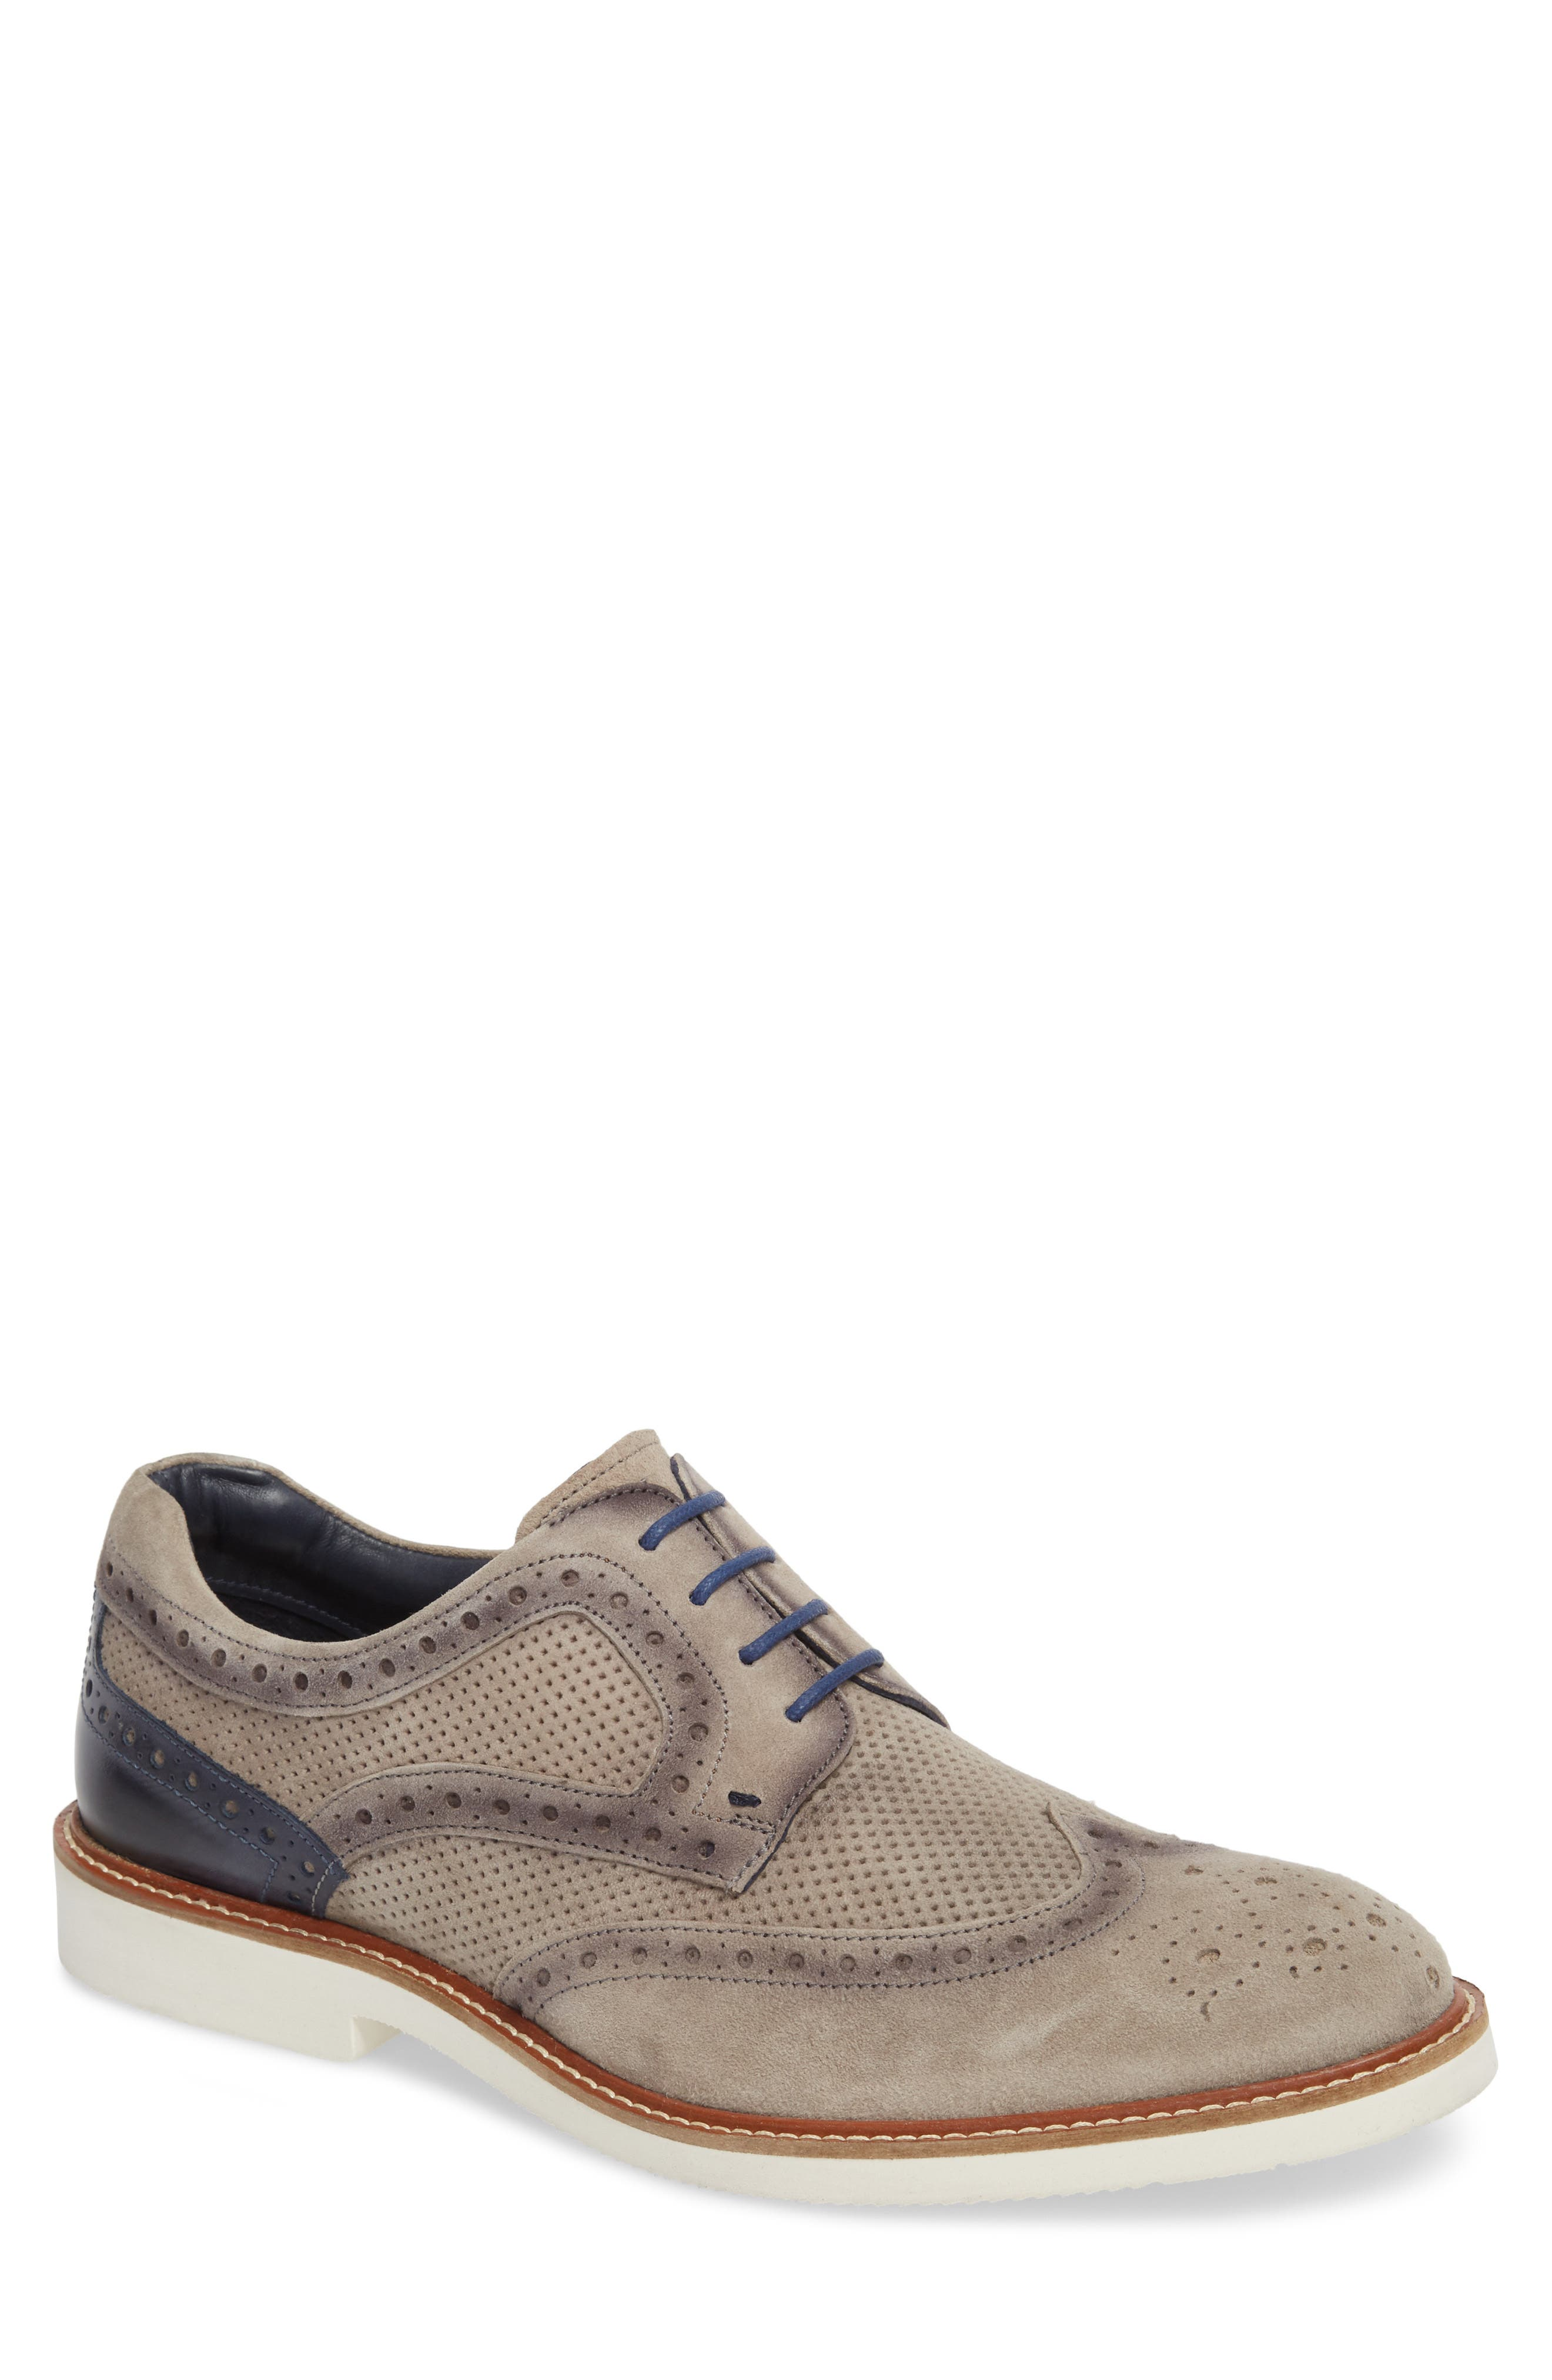 Shaw Perforated Wingtip Derby,                         Main,                         color,